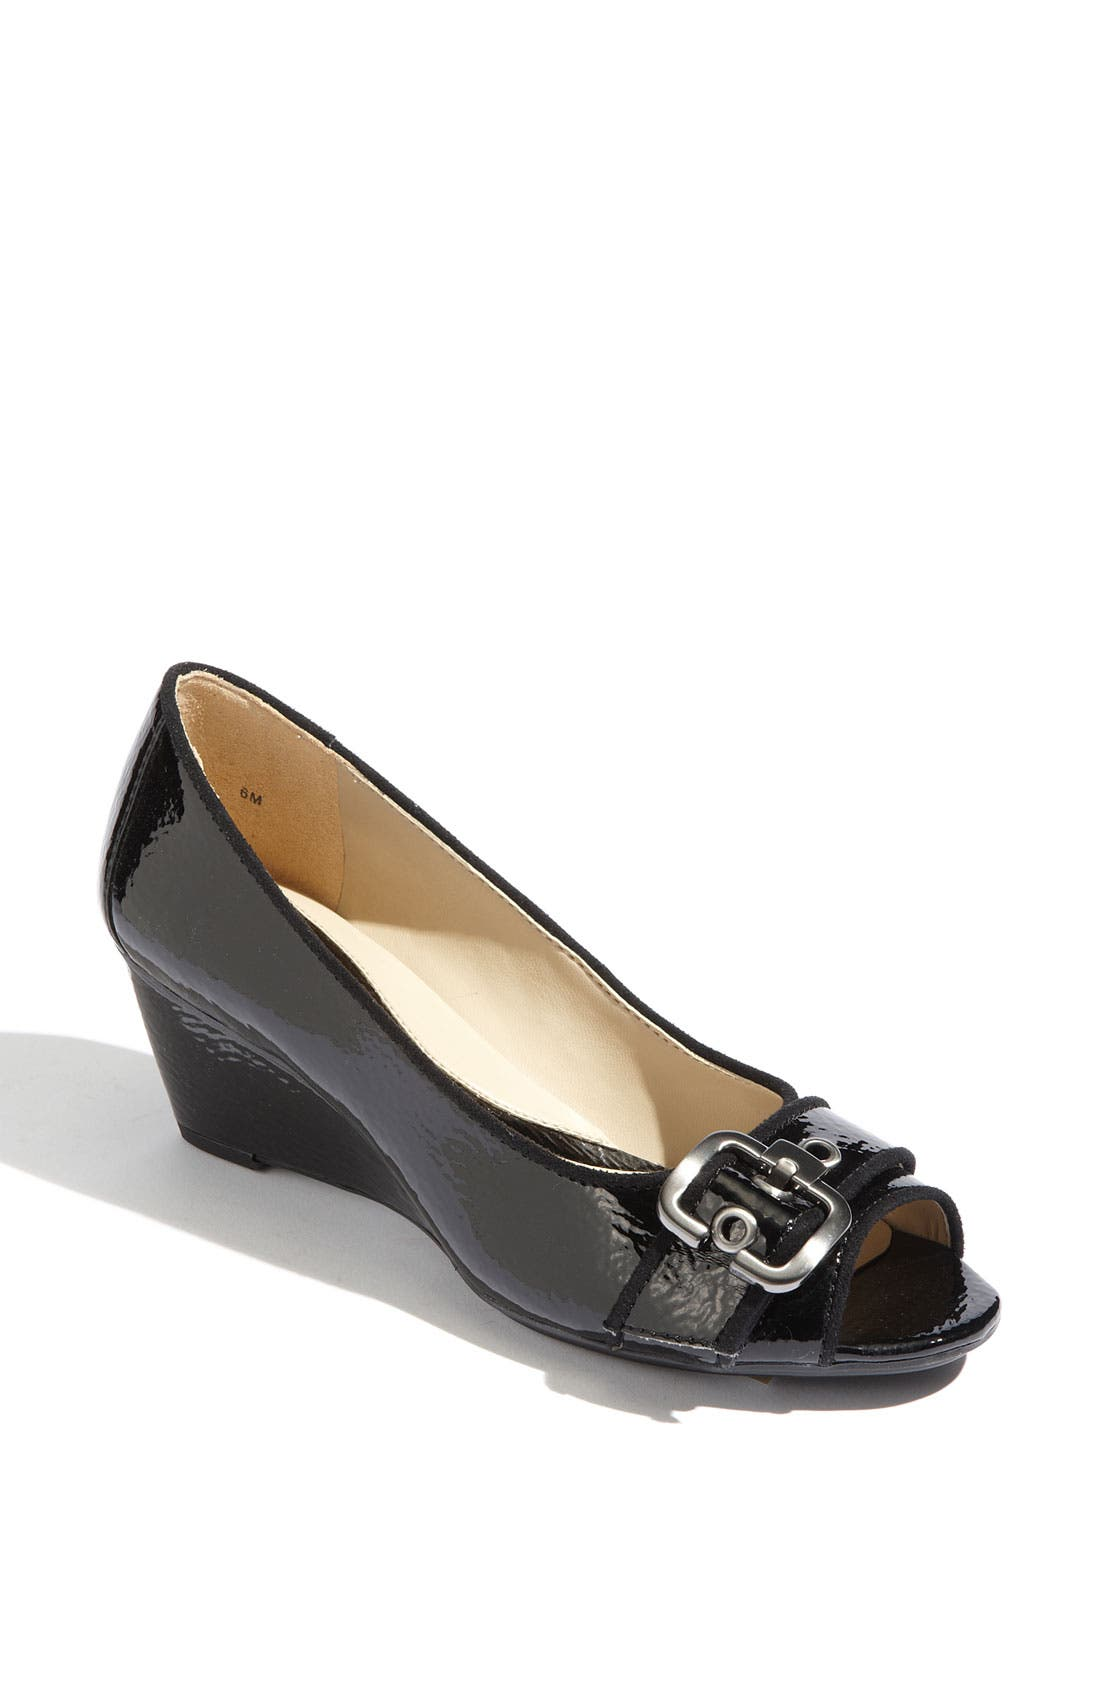 Alternate Image 1 Selected - Naturalizer 'Hidi' Pump